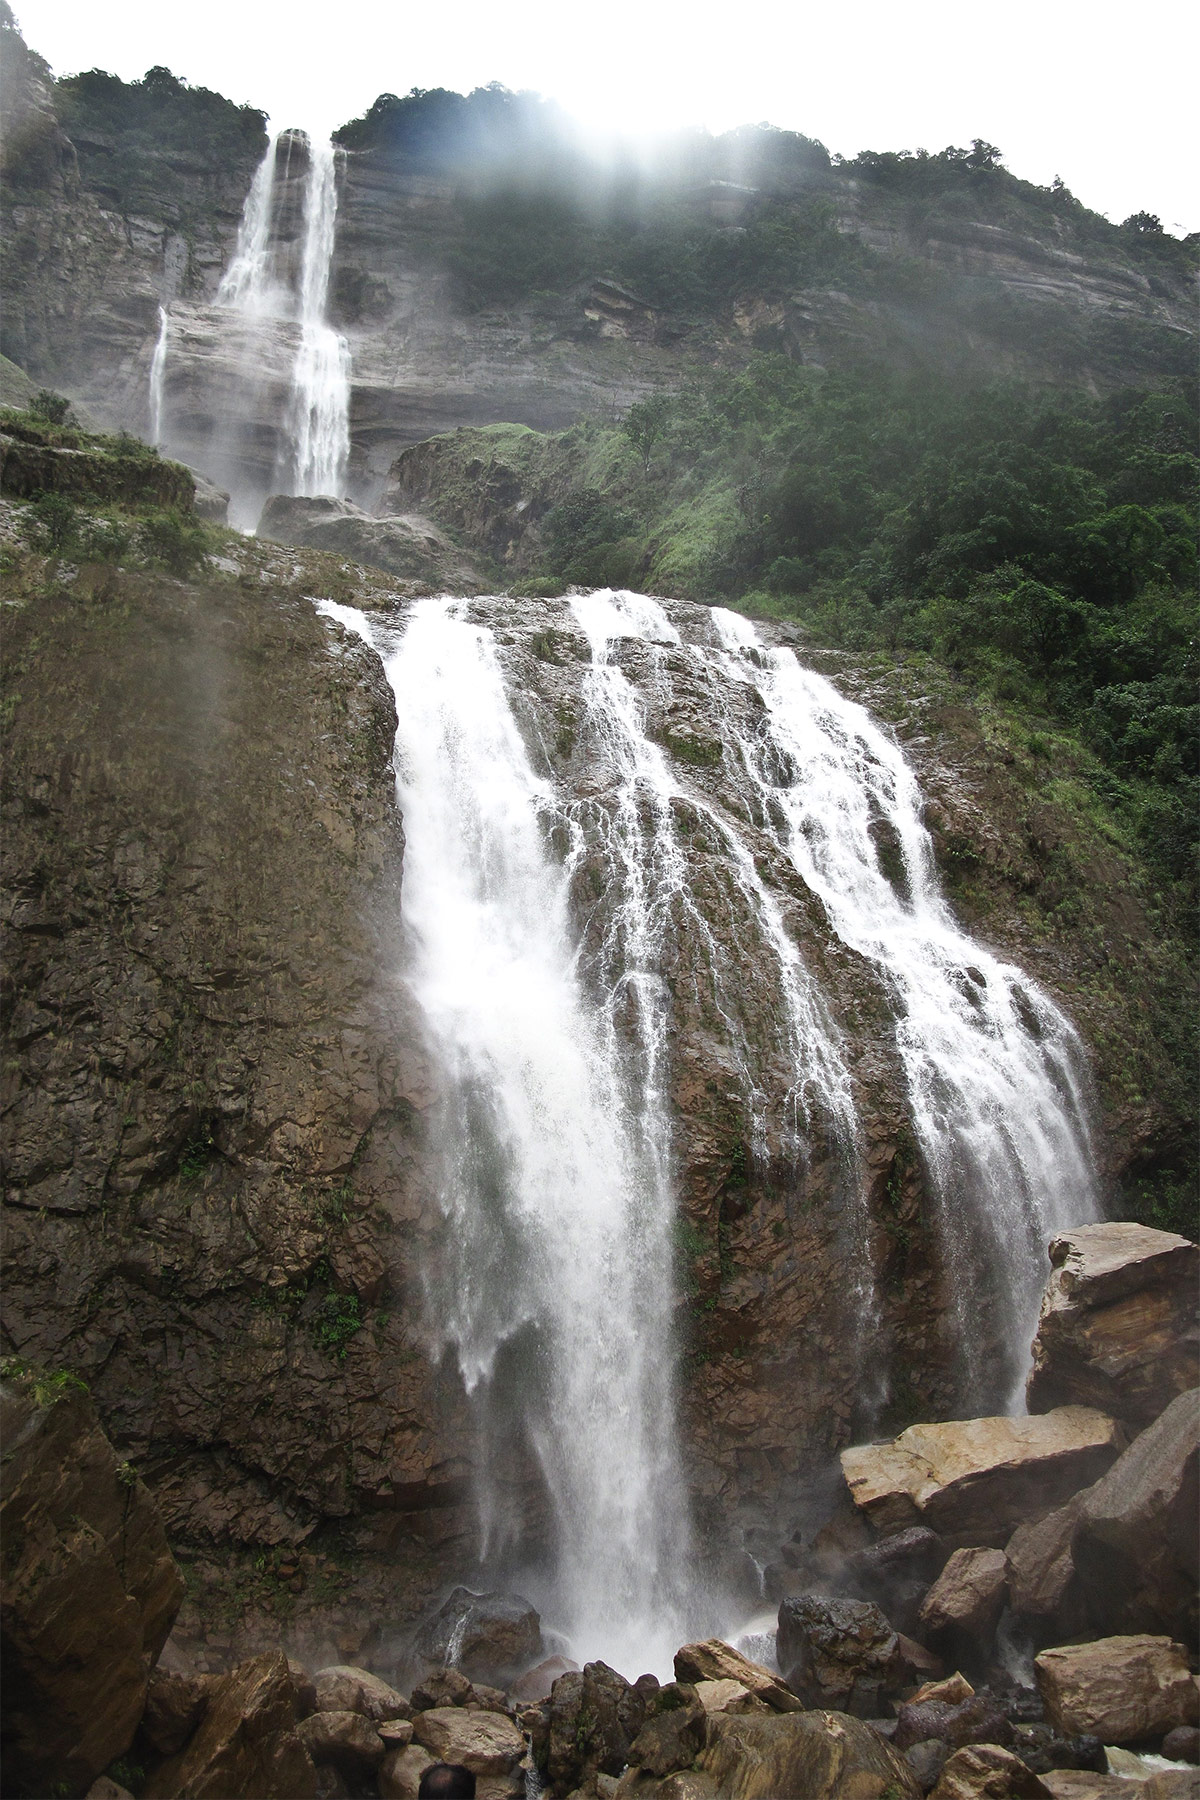 Tourist Attraction To Visit Nearby Nohsngithiang Waterfalls Or Seven Sisters Waterfall-Kynrem Waterfalls